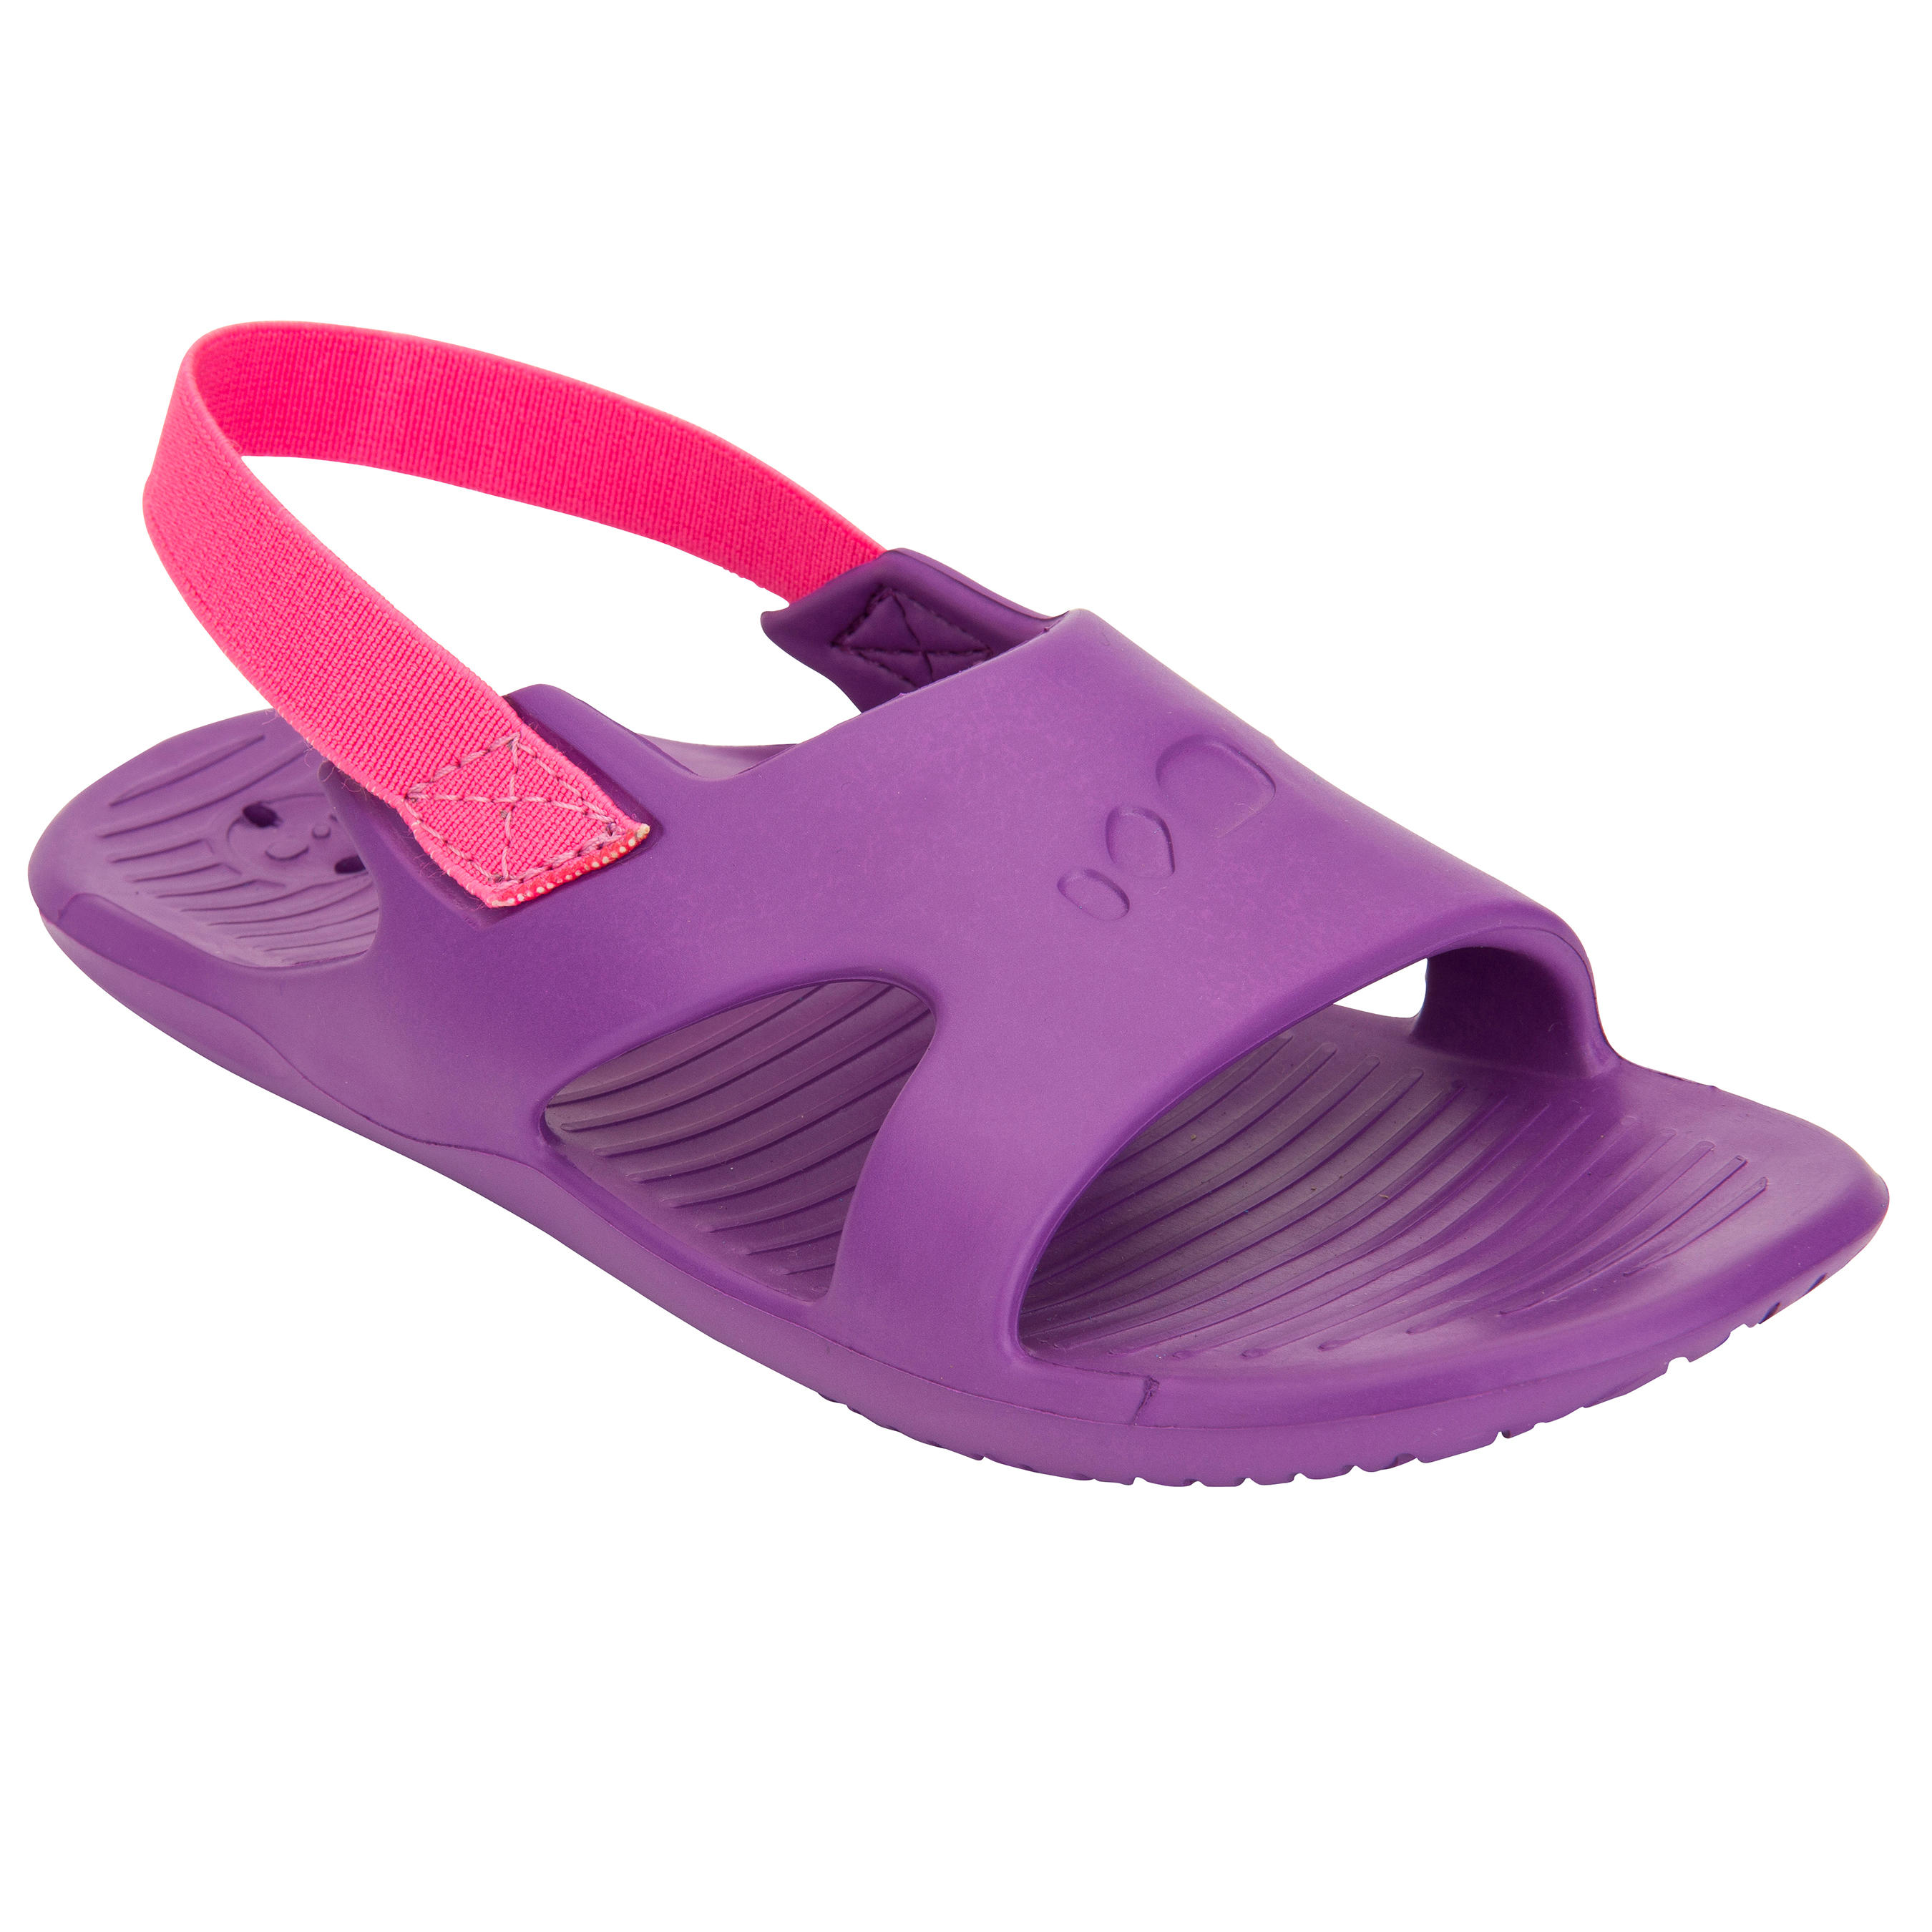 Nataslap Girls' Pool Sandals - Purple and Pink